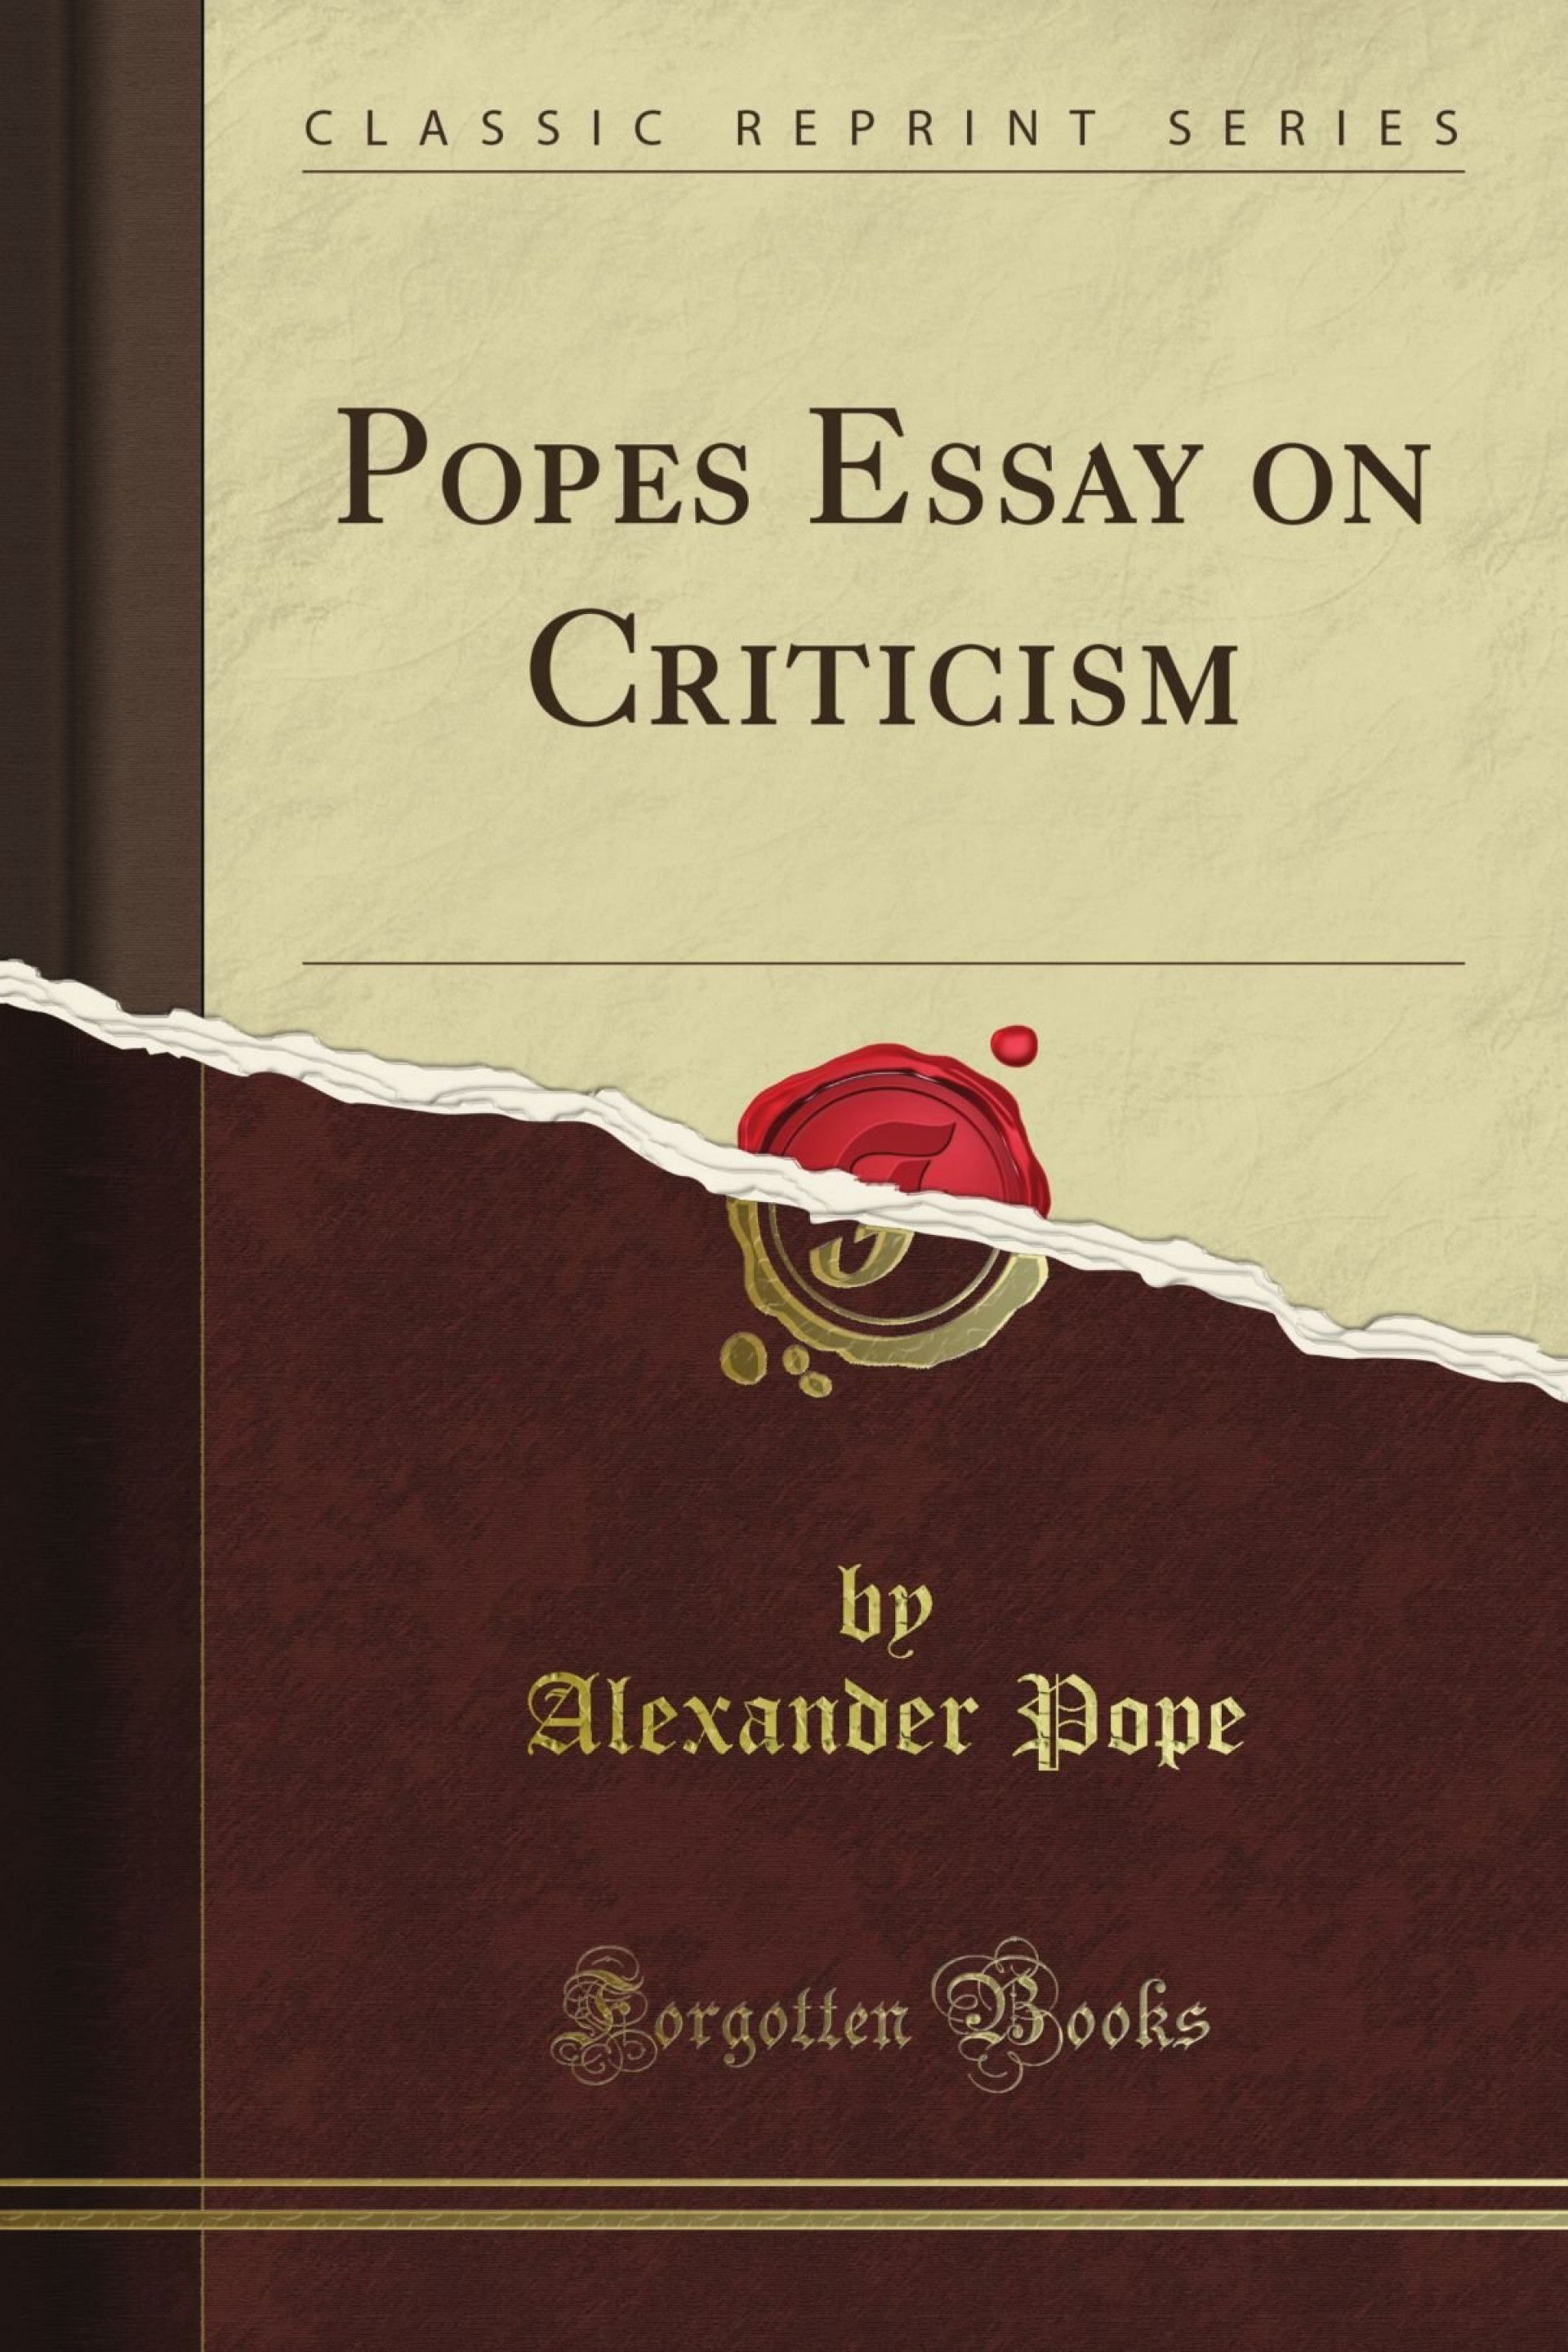 012 Pope Essay On Criticism Example Unique Part 2 Pope's Was Written In 1920